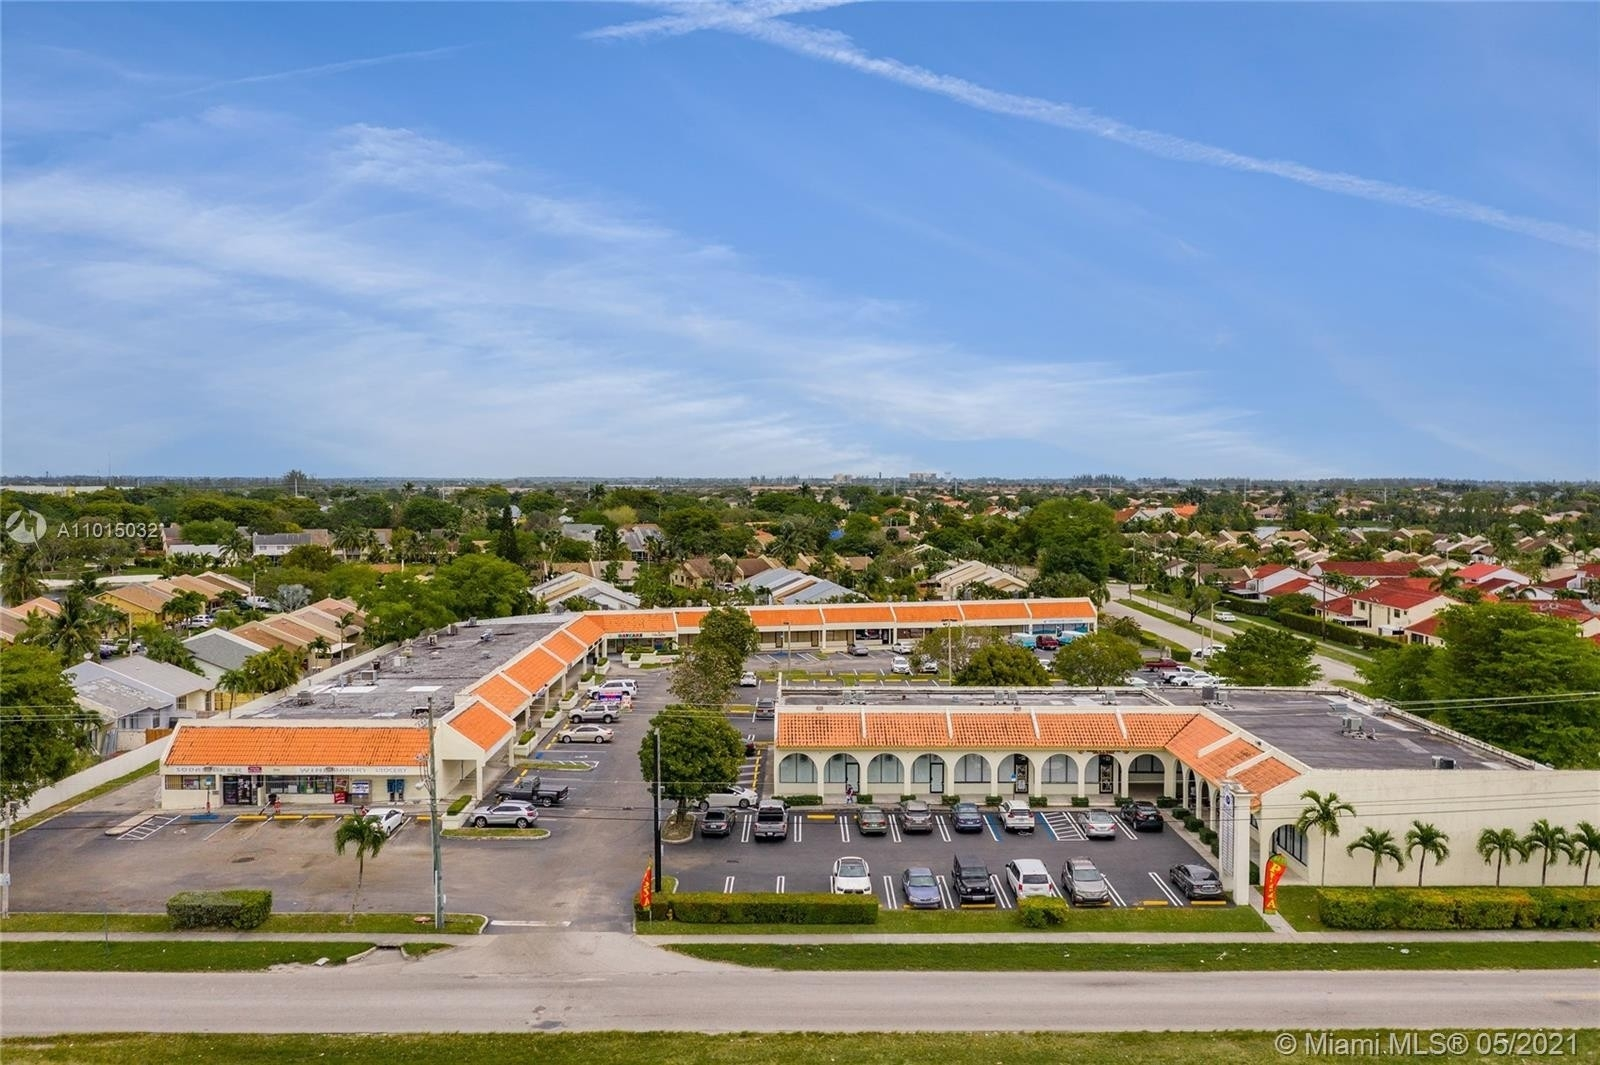 Commercial / Office for Sale at Homestead, FL 33034